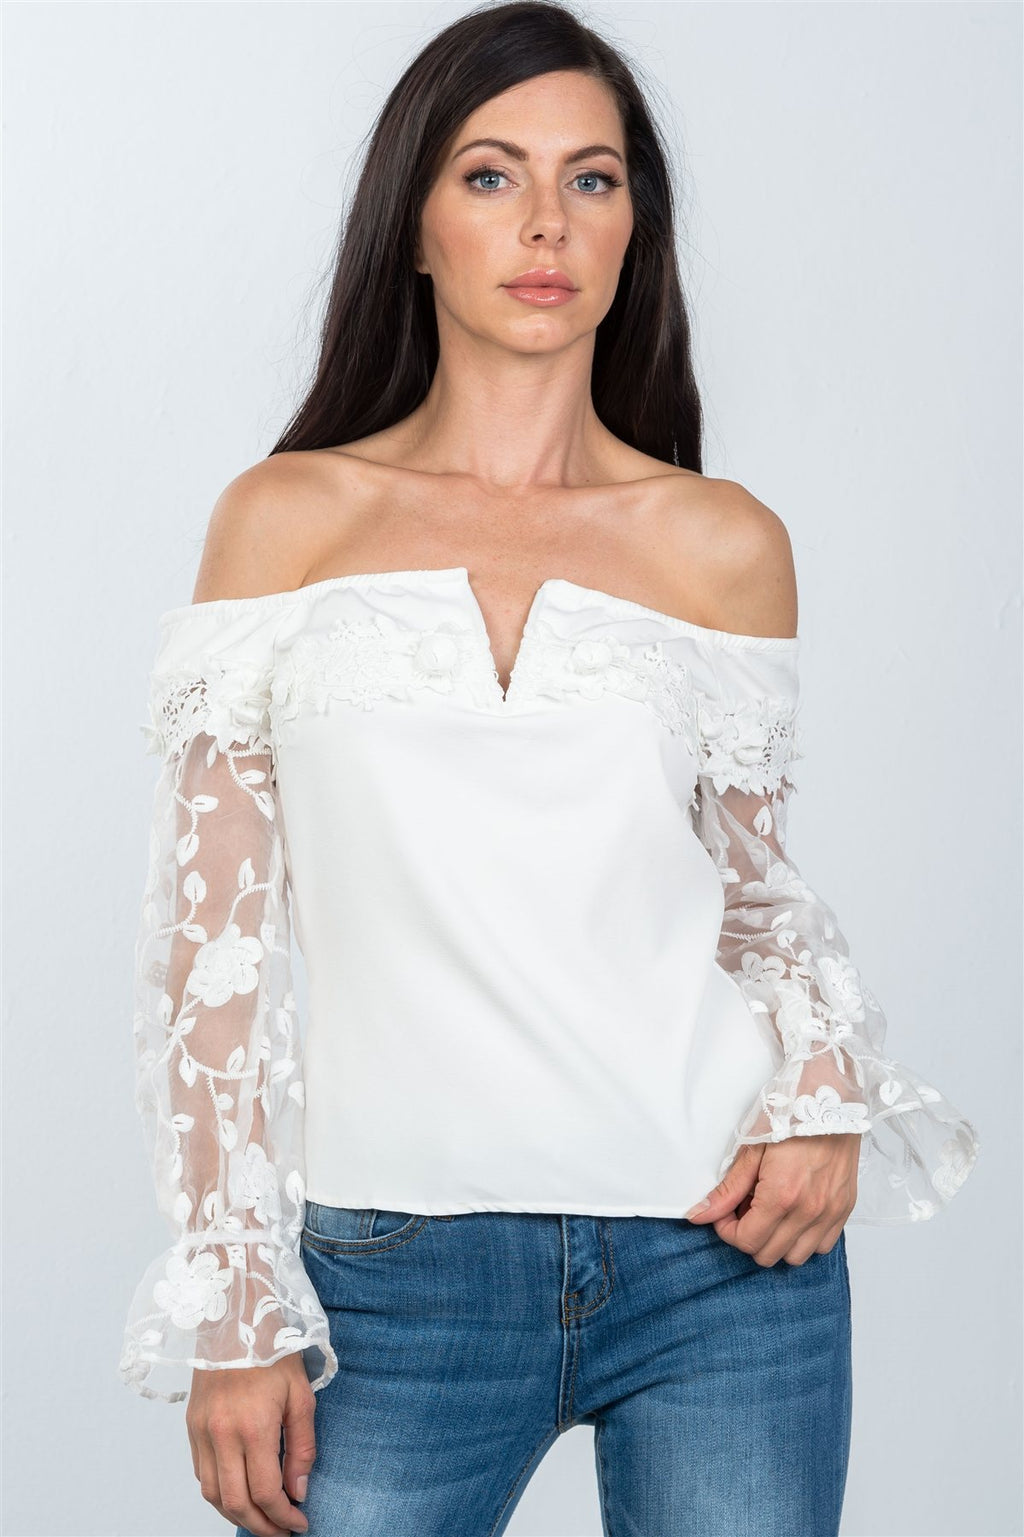 Off the Shoulder Floral Applique Top Material:97% Polyester 3% Spandex, Slightly sheer. Sleeve Length: Long Neckline: Off the shoulder, V-Wire neckline Closure Type: Back zipper and hook-and-eye closure Details: Floral textured sleeves, bell sleeves, off white color